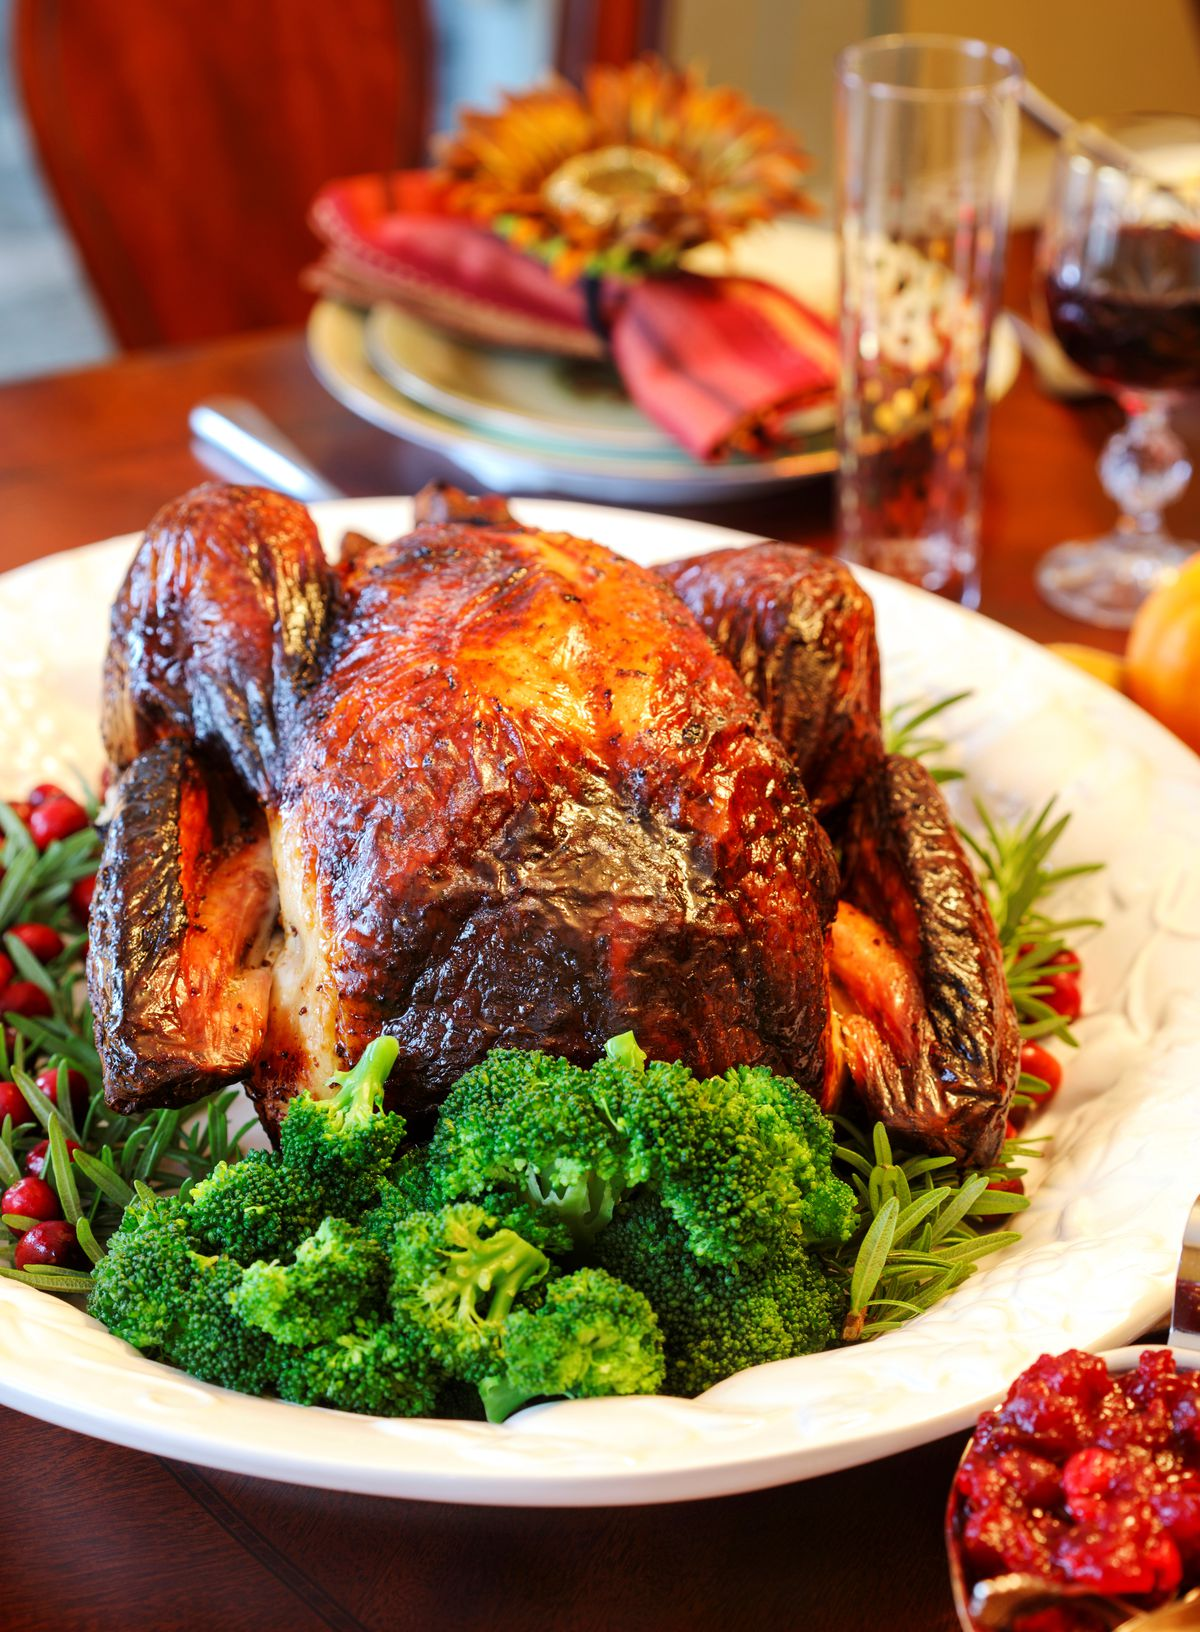 Homemade Roasted Thanksgiving Day Turkey on the holiday table